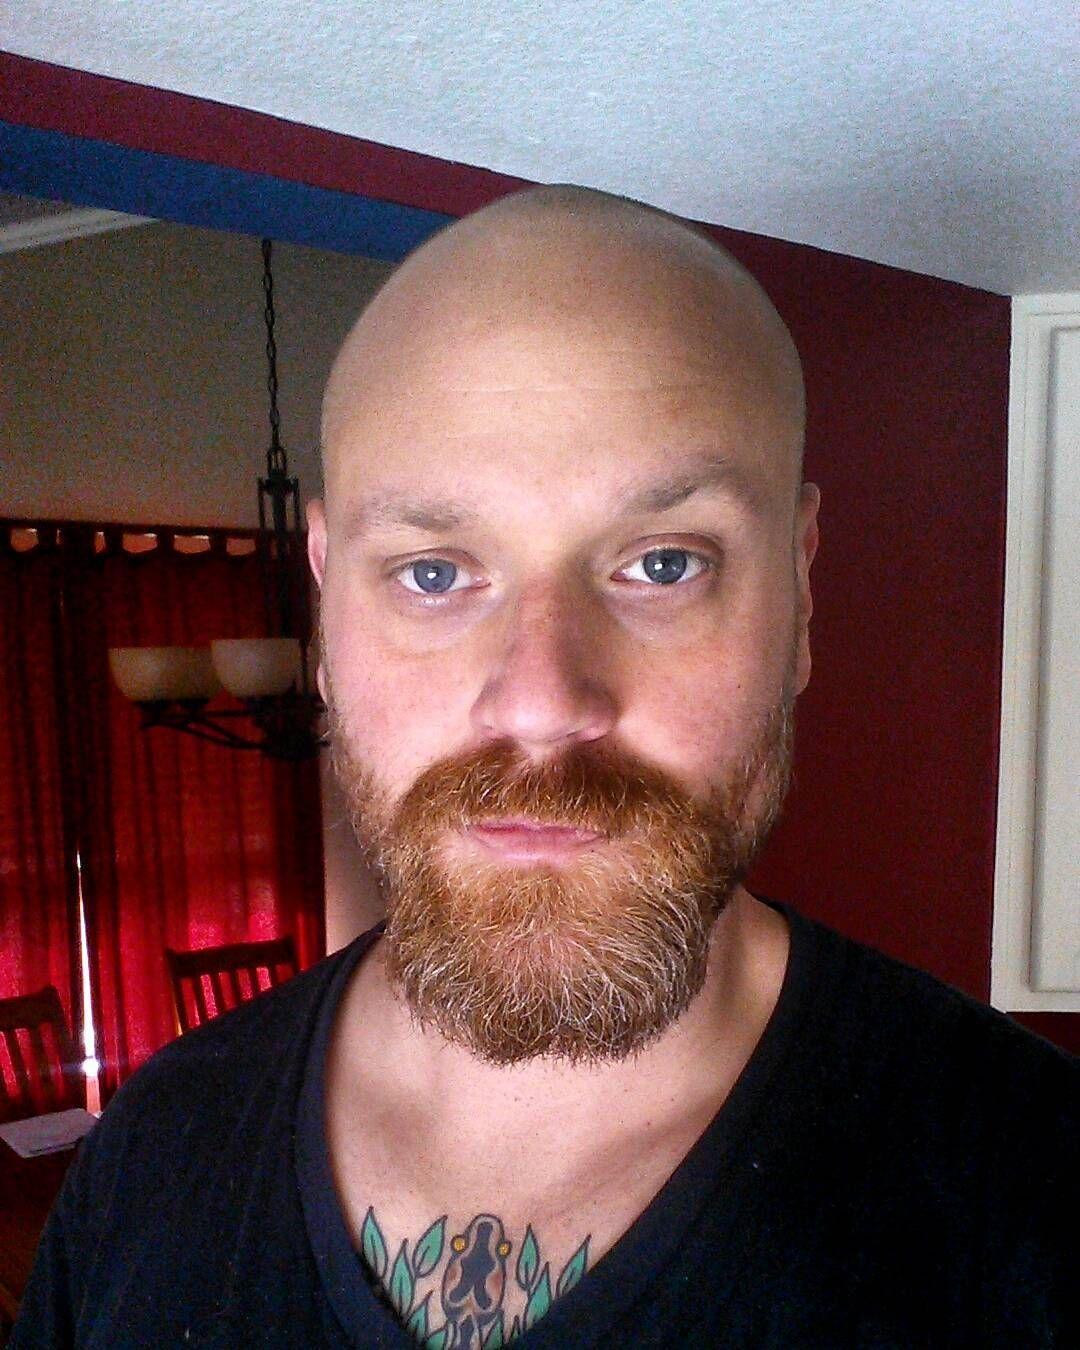 How to Obtain the Bald Look for Men How to Obtain the Bald Look for Men new photo